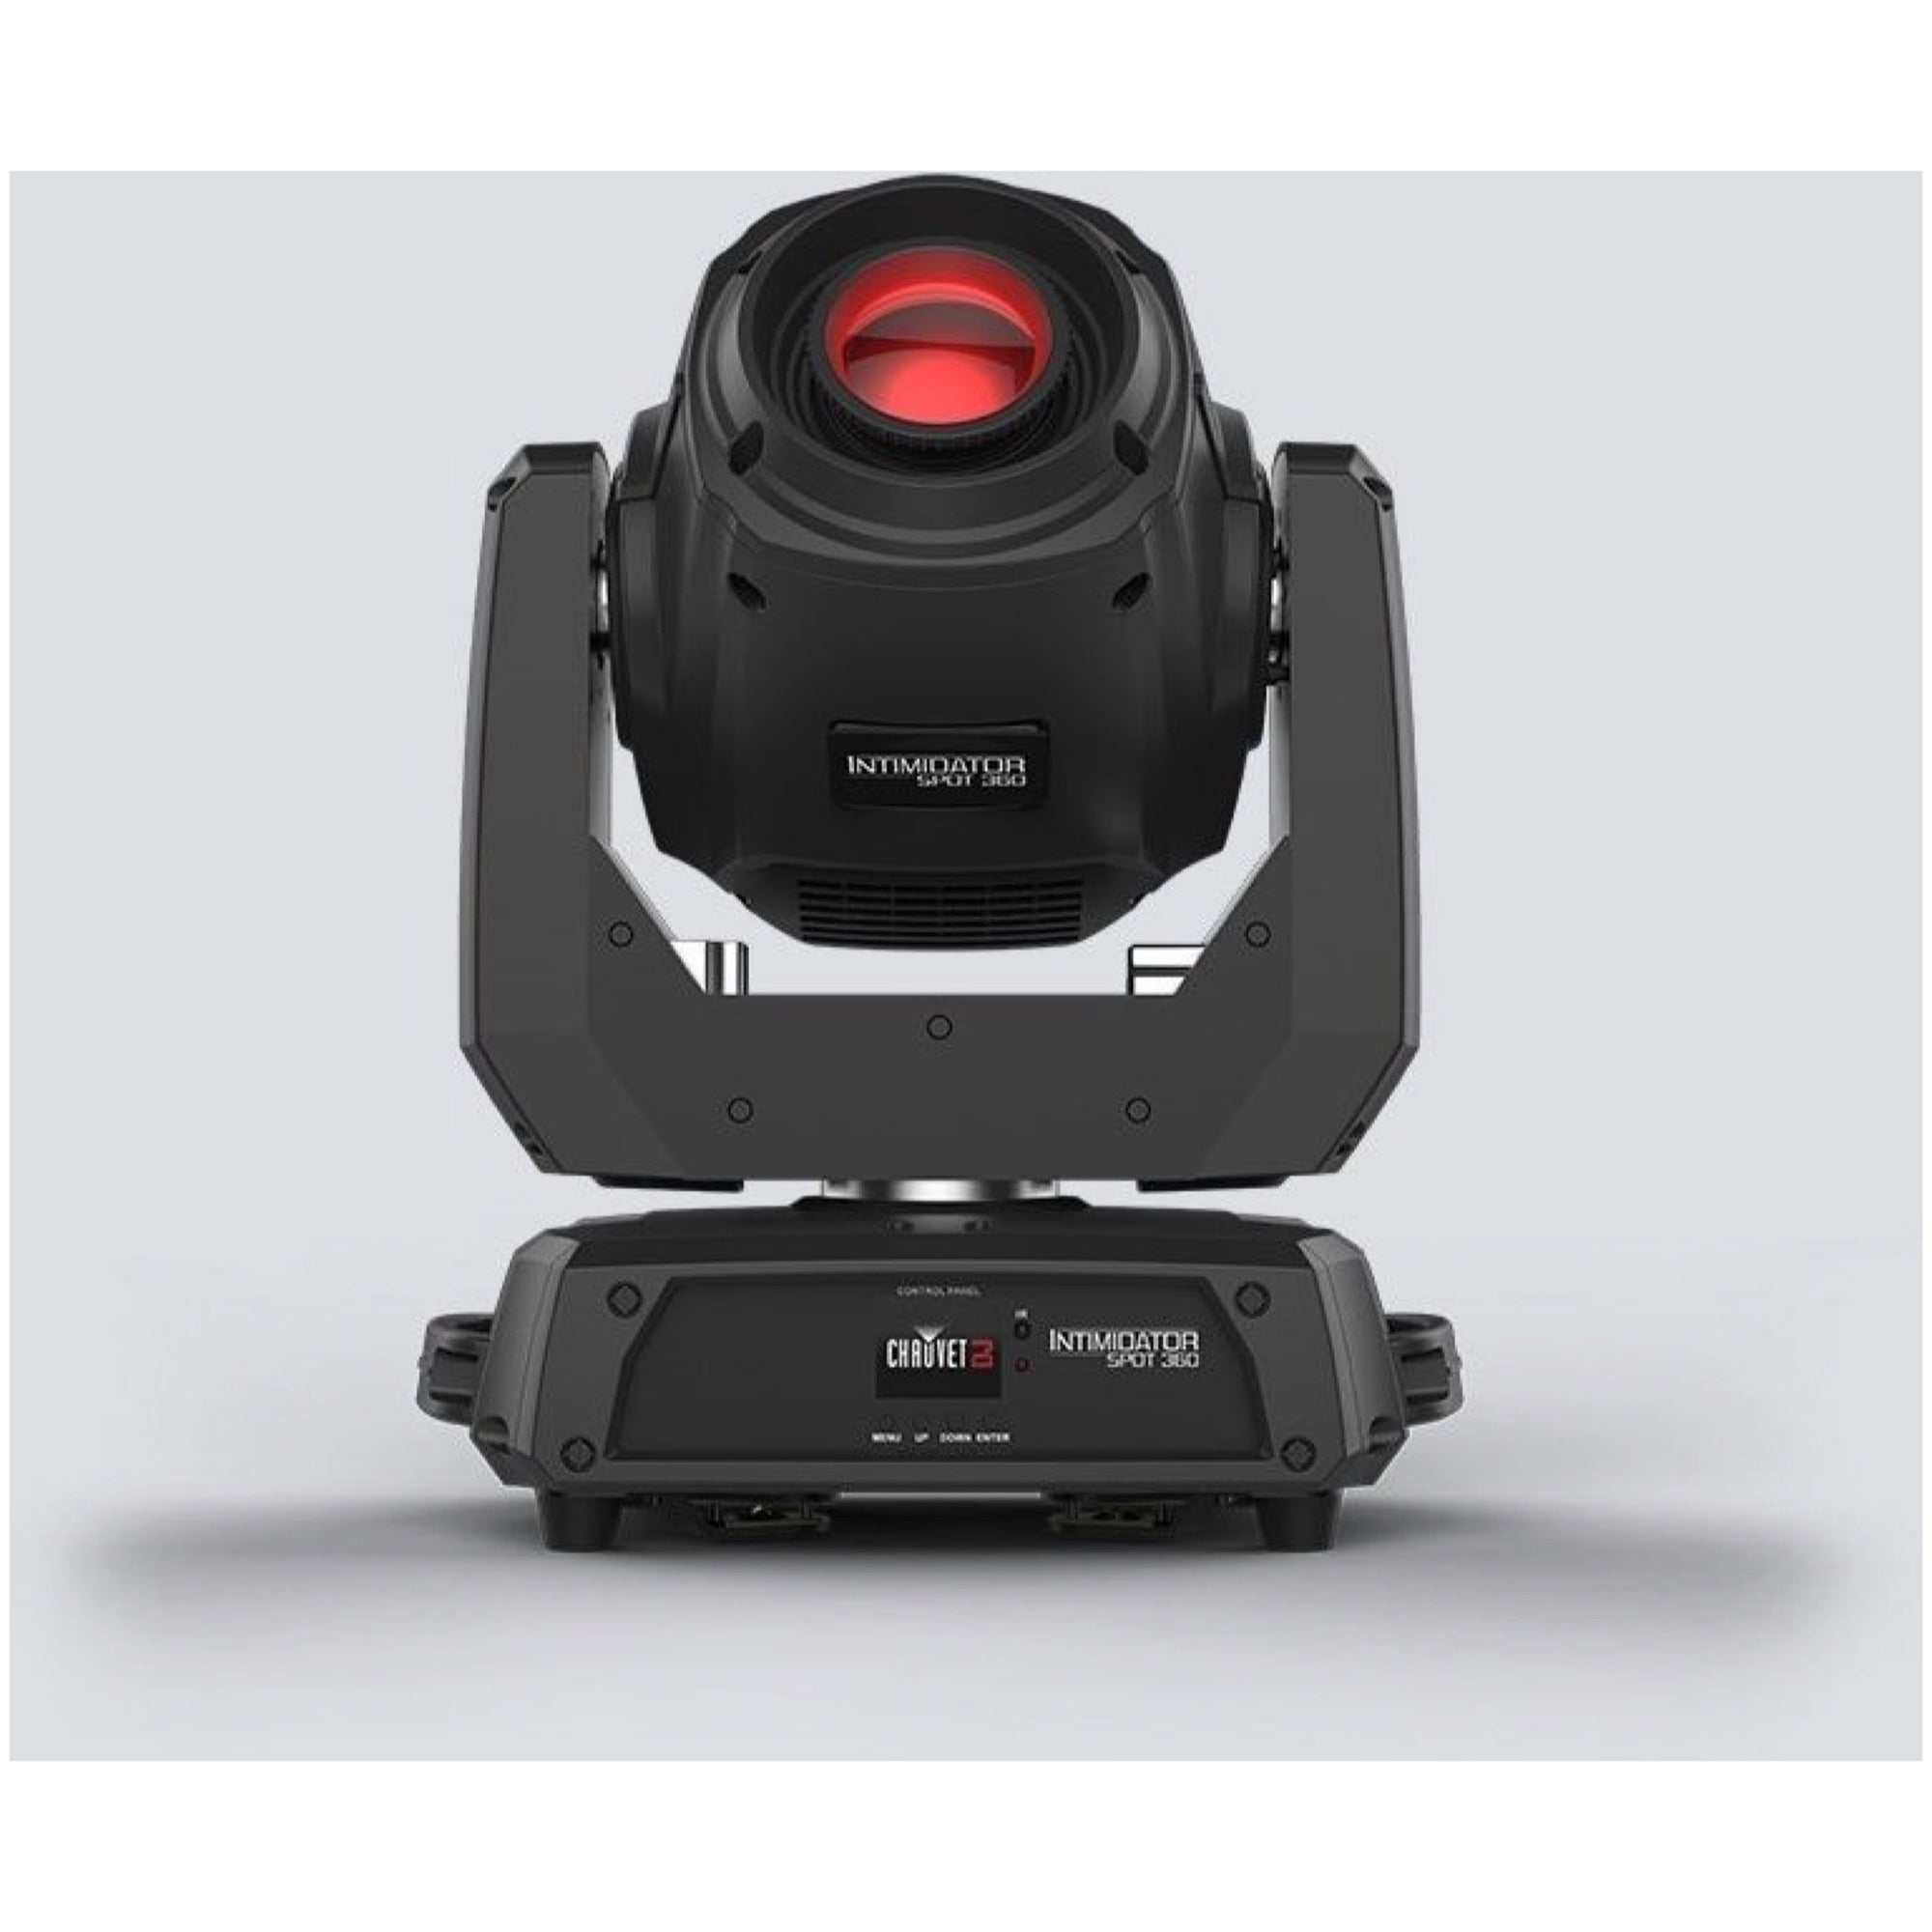 Chauvet Intimidator Spot 360 Light, Black